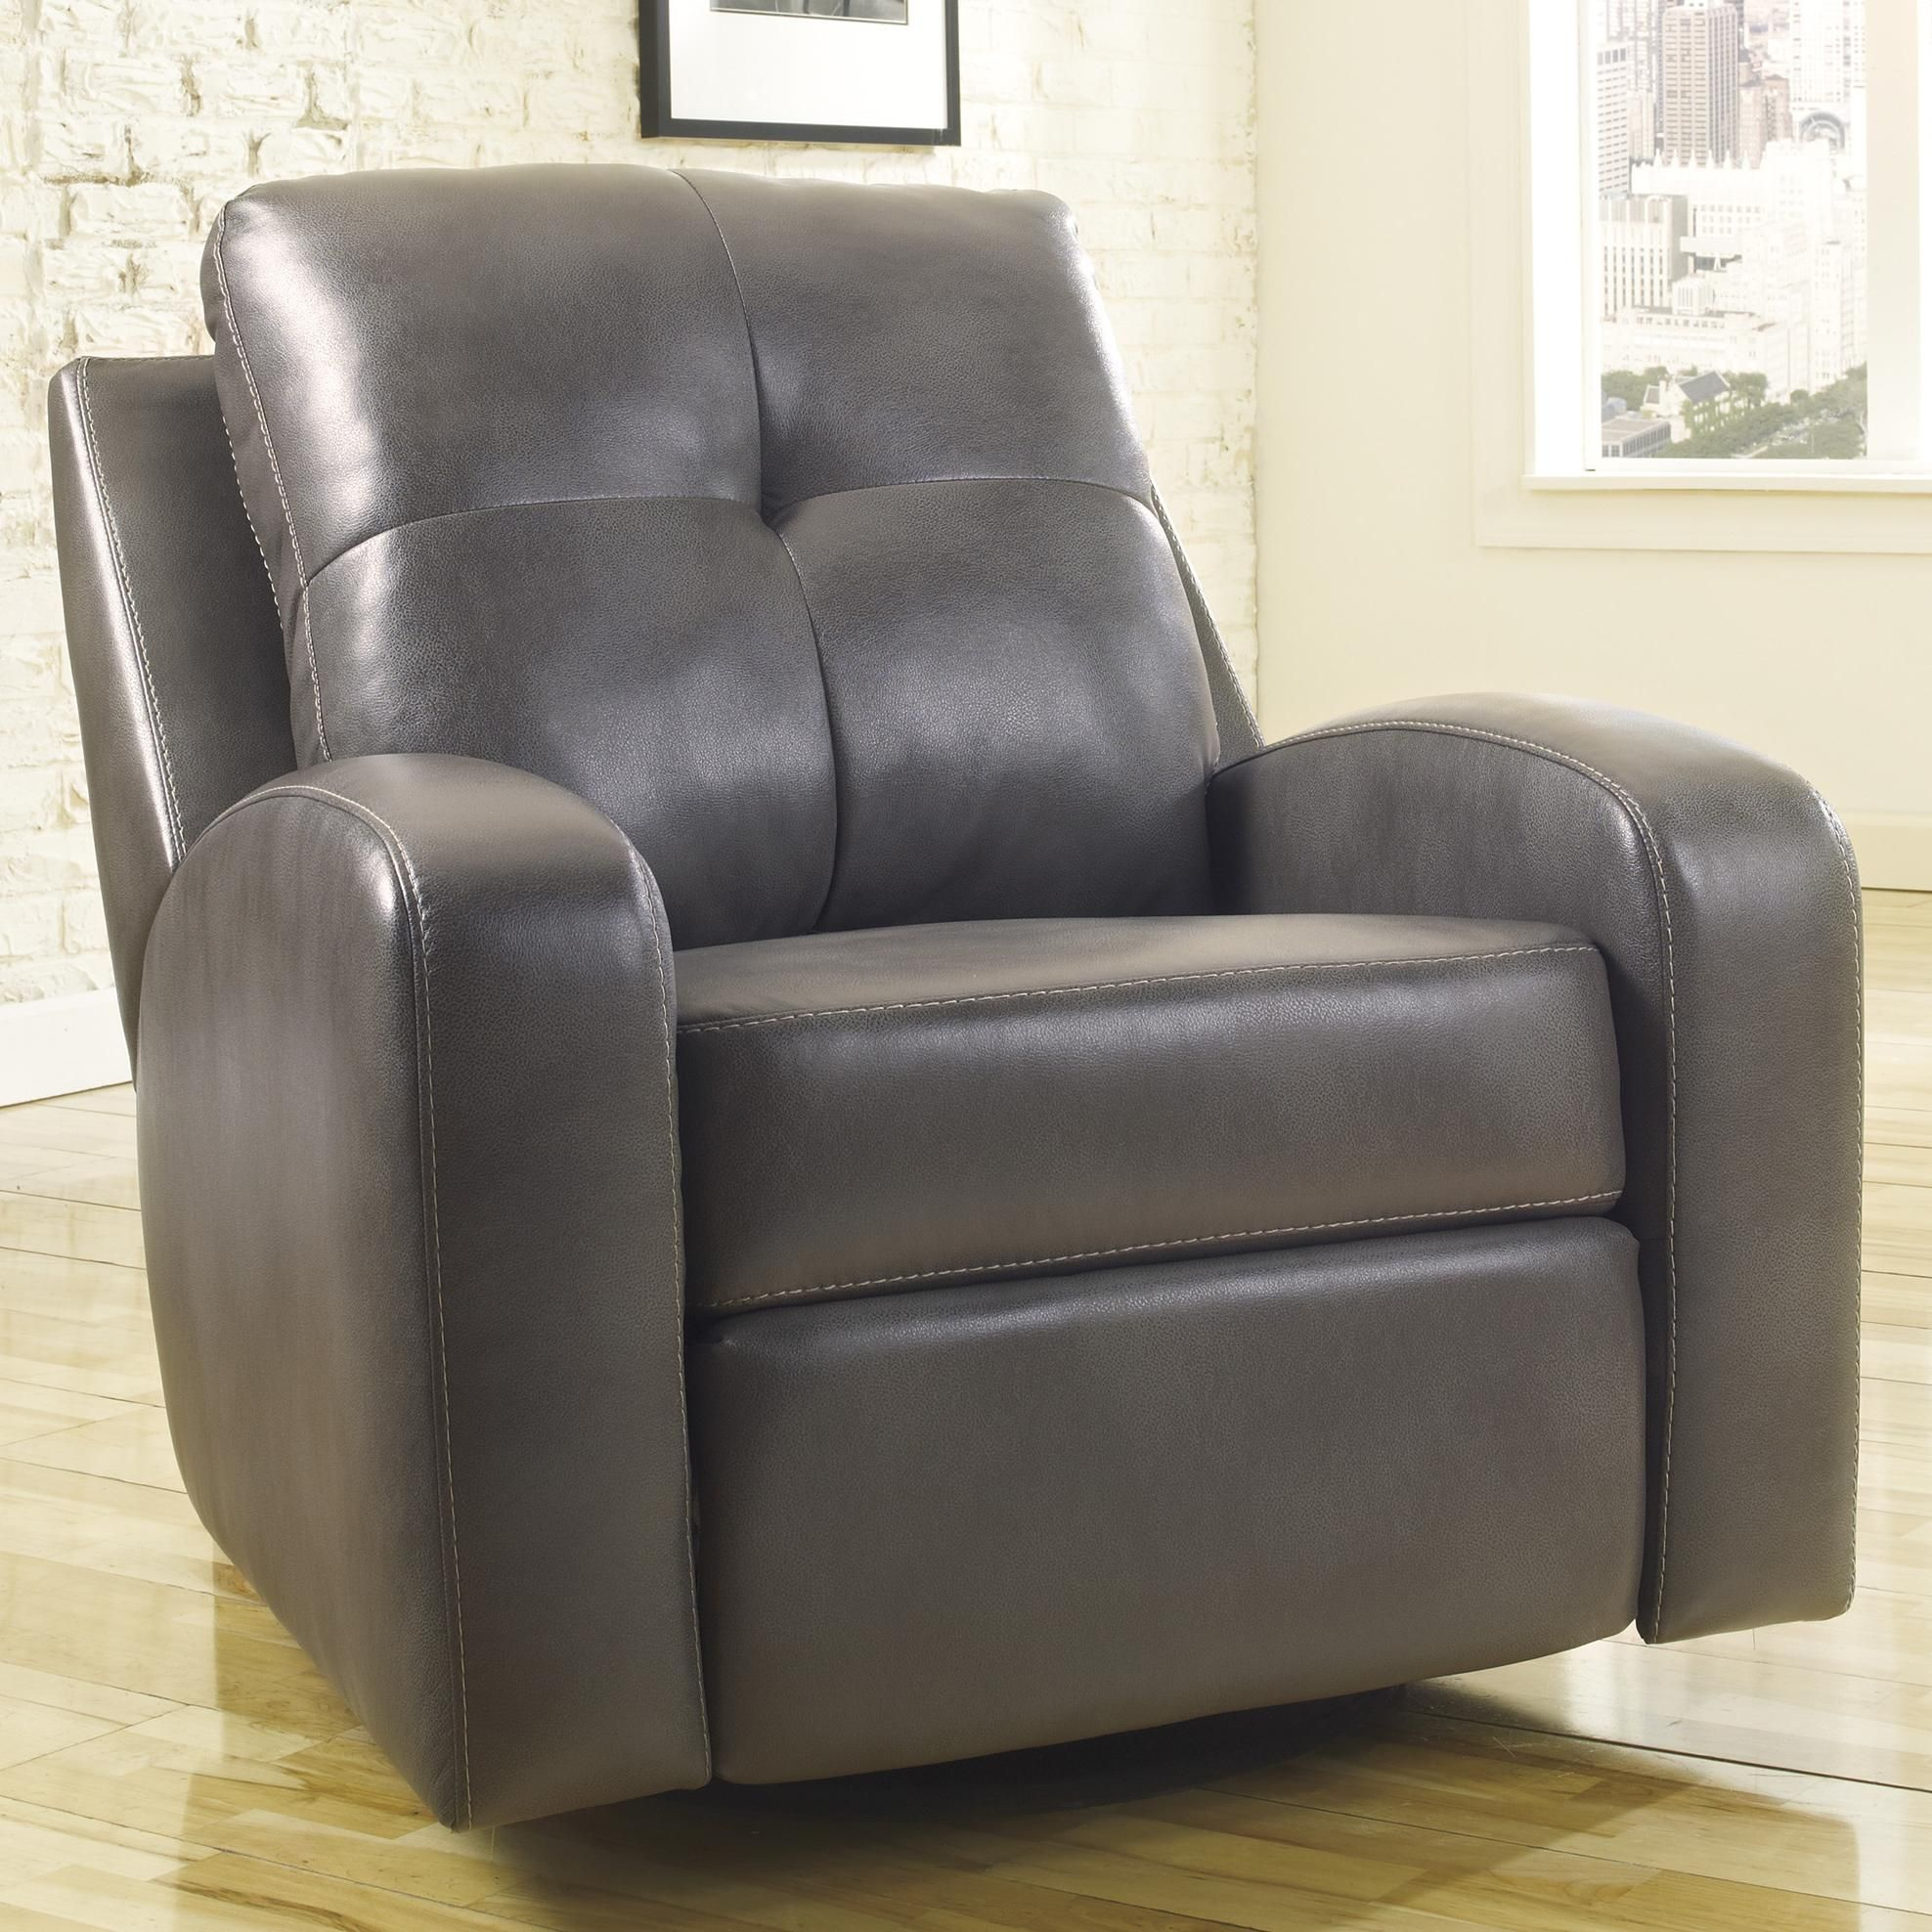 Mannix DuraBlend Gray Swivel Glider Recliner by Signature Design